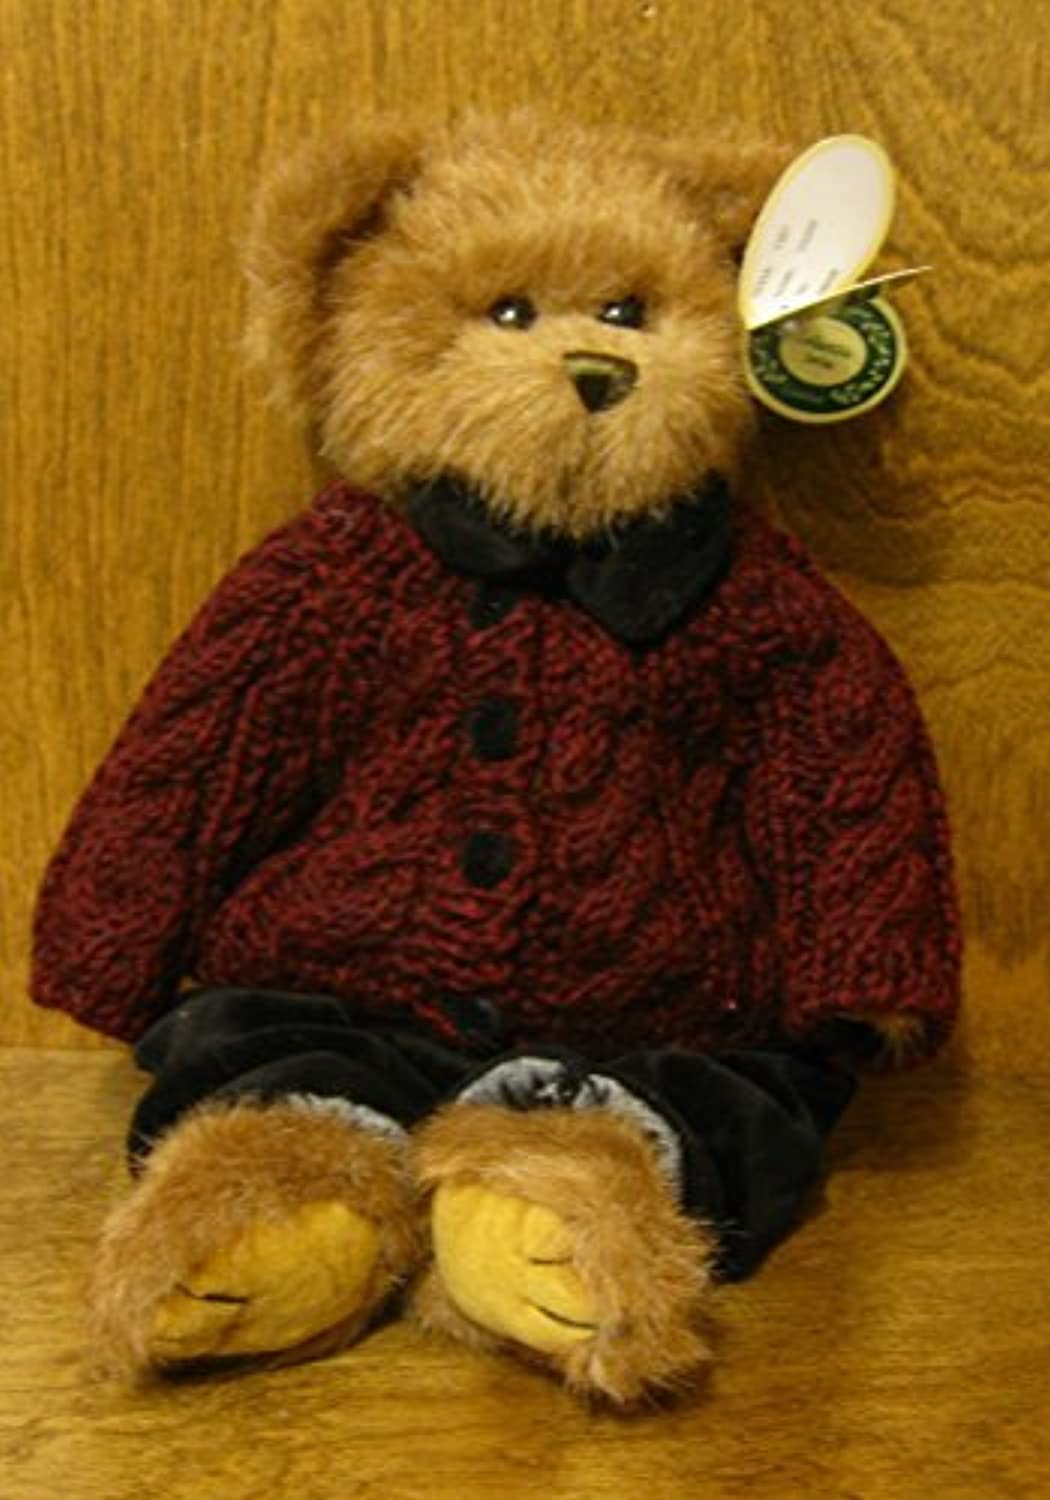 almacén al por mayor Victor 14 Bearington Bear Retirojo 2004 by Bearington Bearington Bearington Bears  descuentos y mas